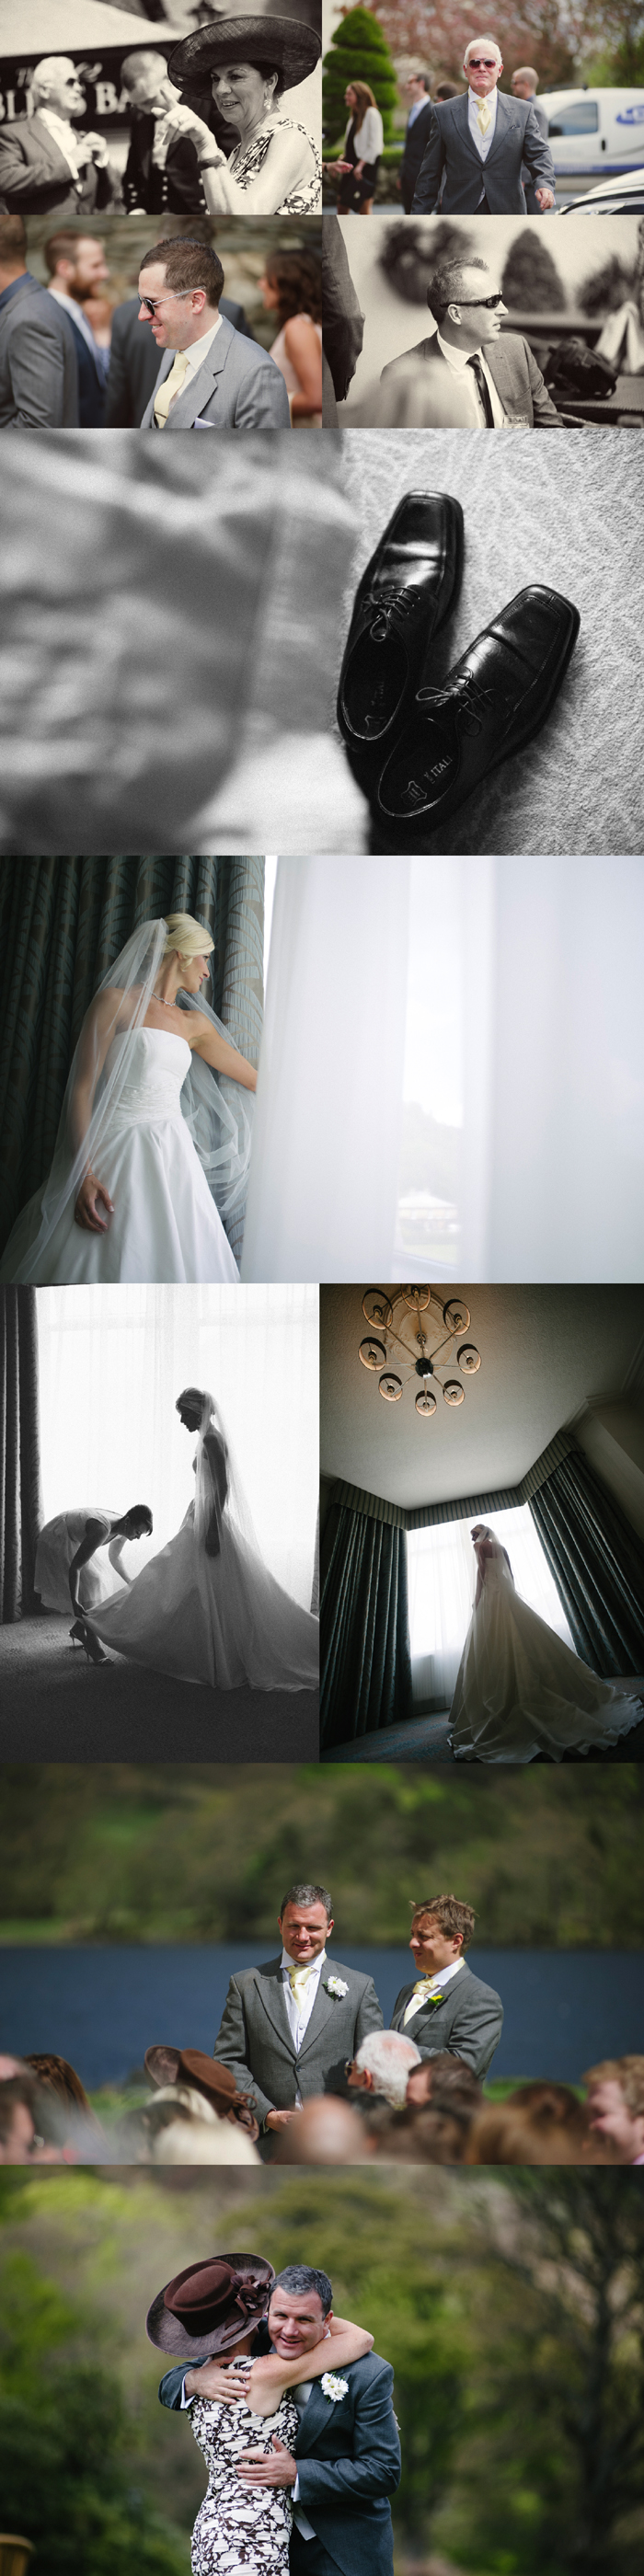 wedding photography from inn on the lake in glenridding